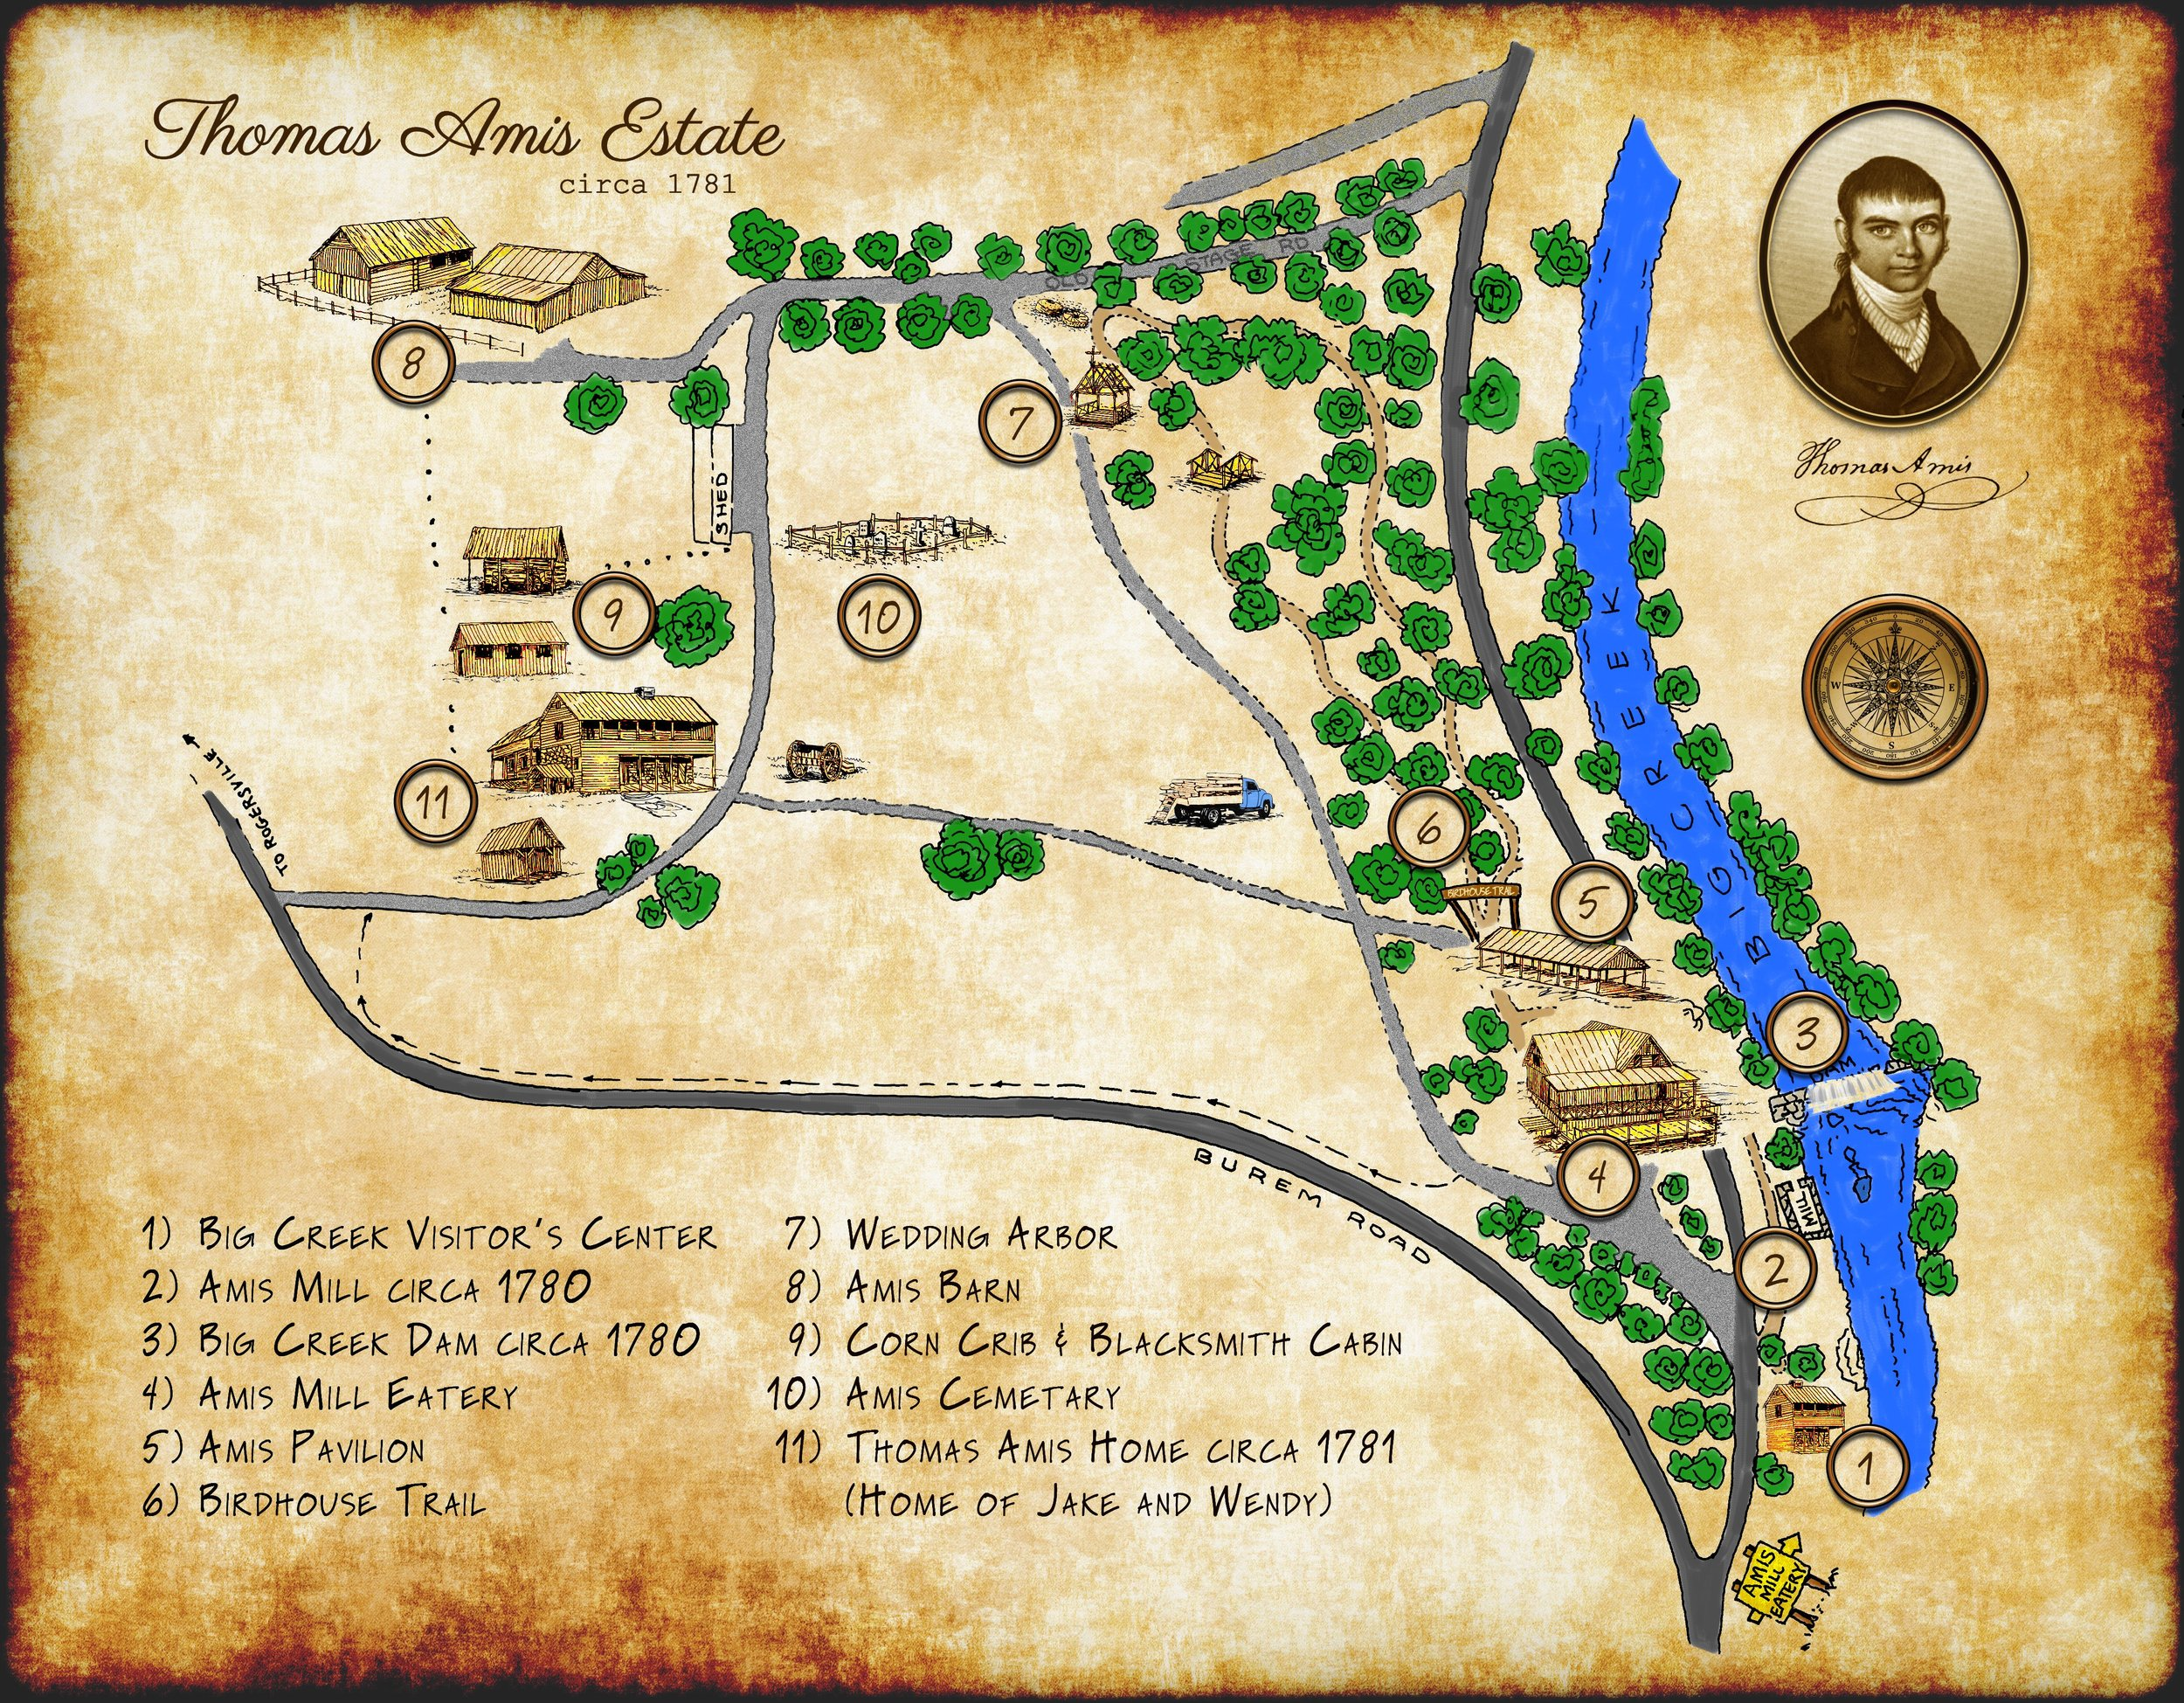 Walk around and discover the history! - Start at the Big Creek Visitor's Center and walk around the entire historic estate, stopping at all the important historic buildings. We are happy to work with you to customize your experience from senior homes, bus tour, mystery tours, church groups, corporate events, and field trips. Your group will experience history through the ancestors of Thomas Amis!